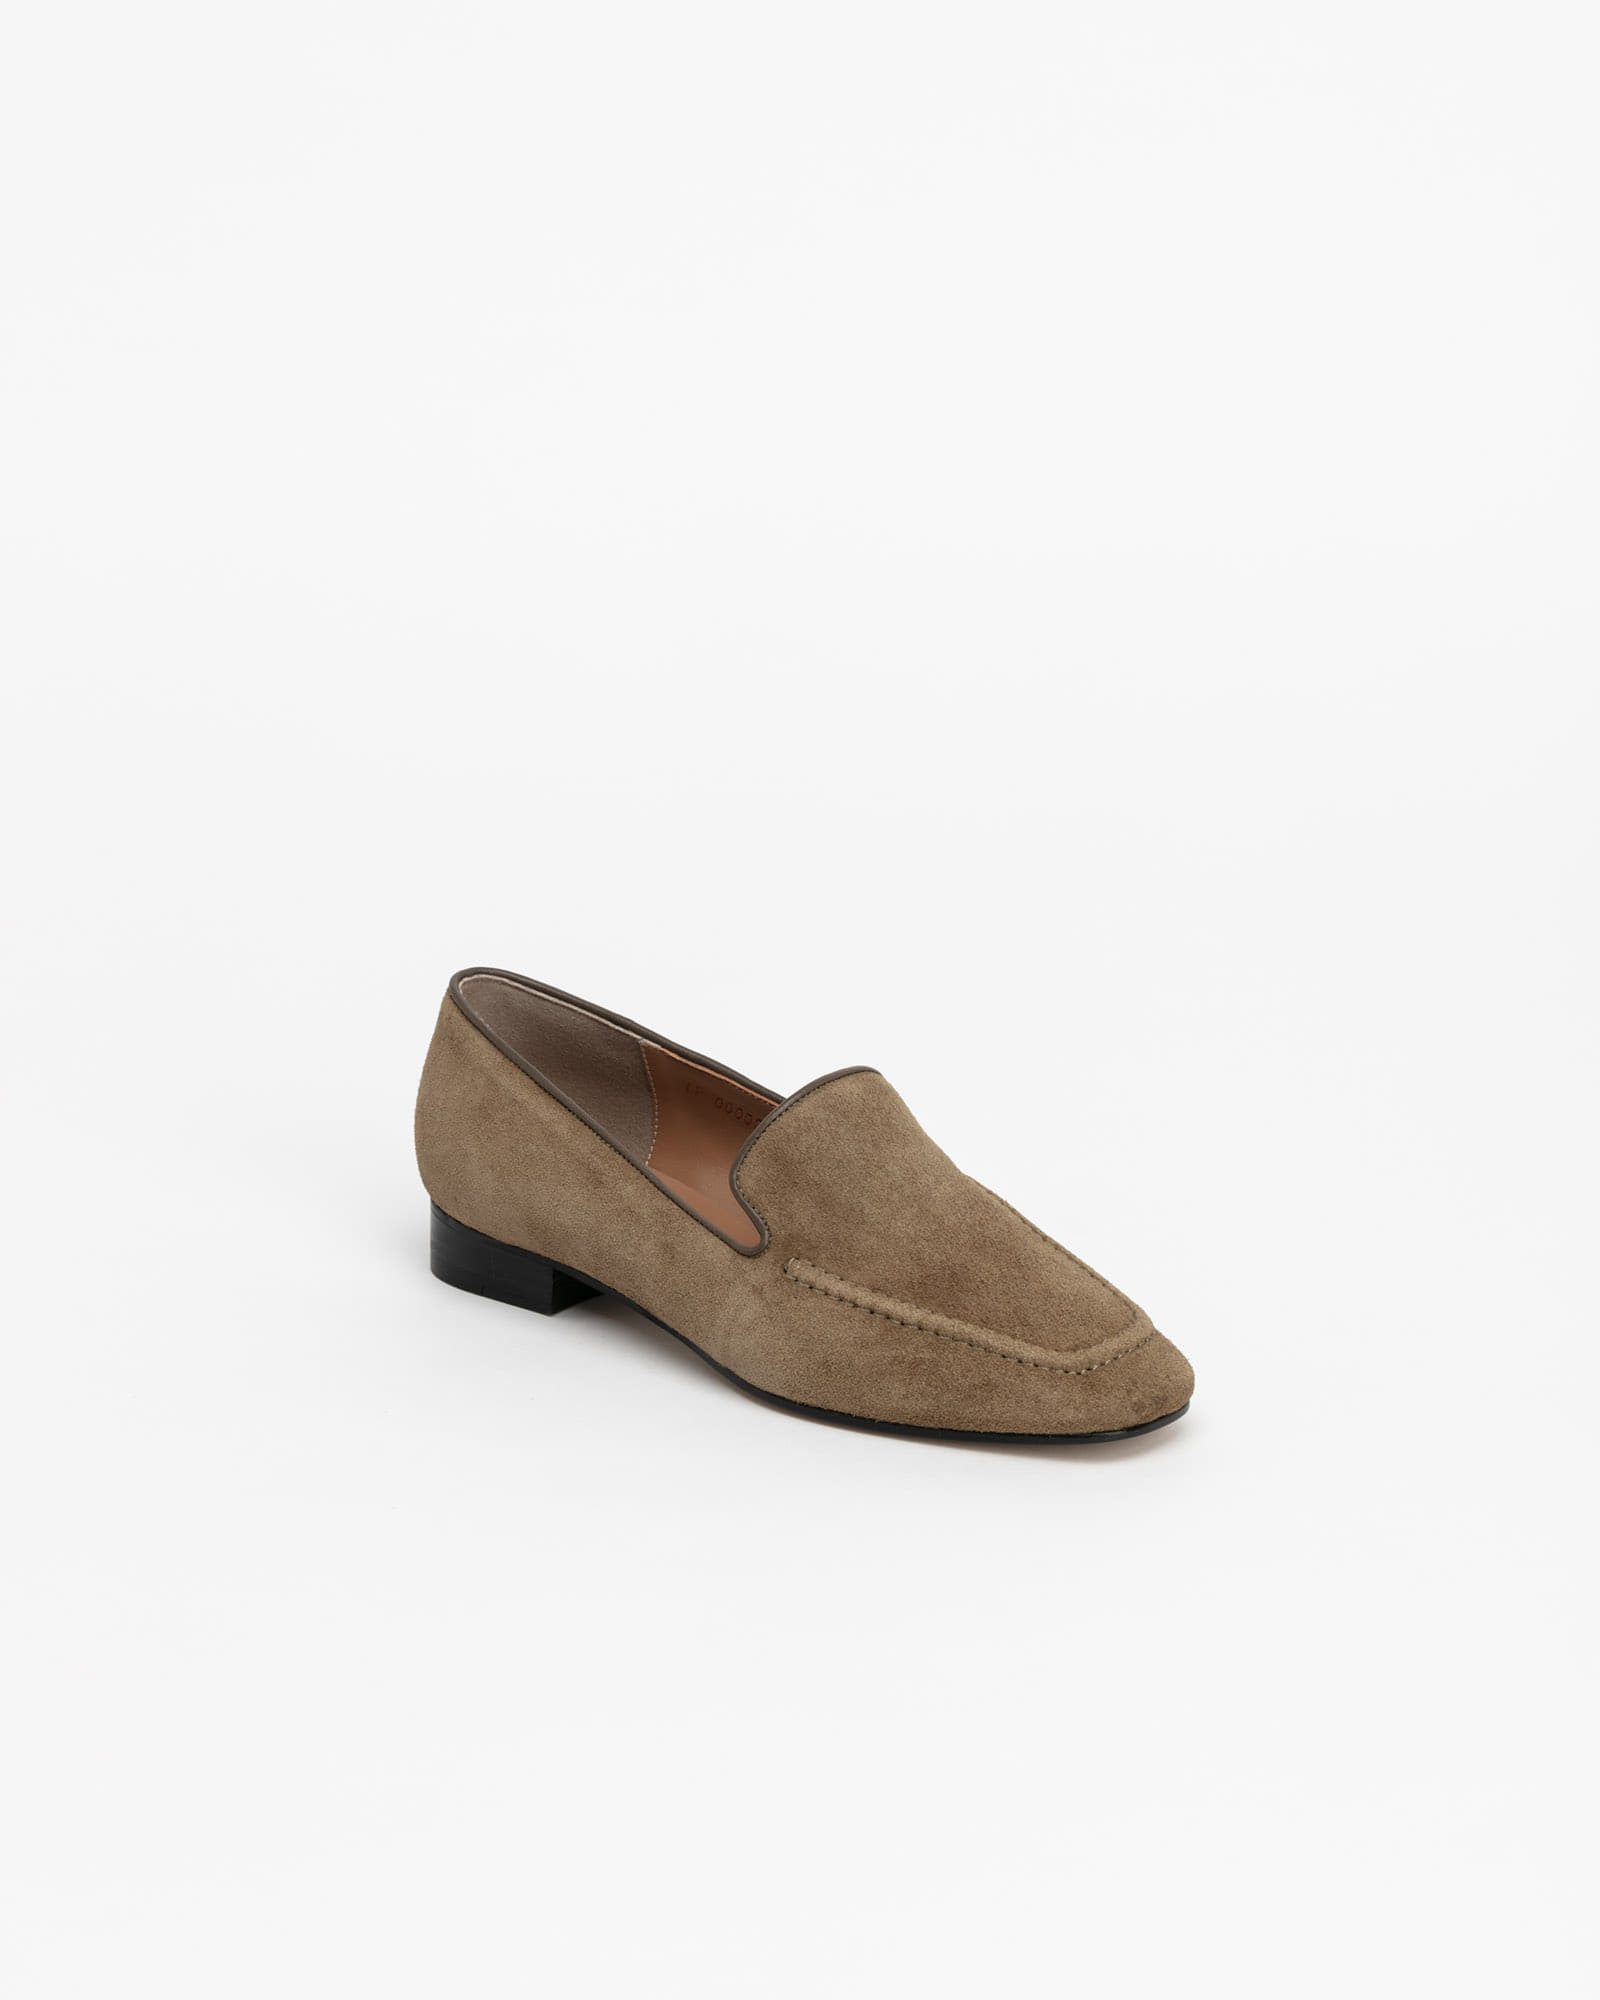 Buffon Slip-on Loafers in Golden Khaki Suede